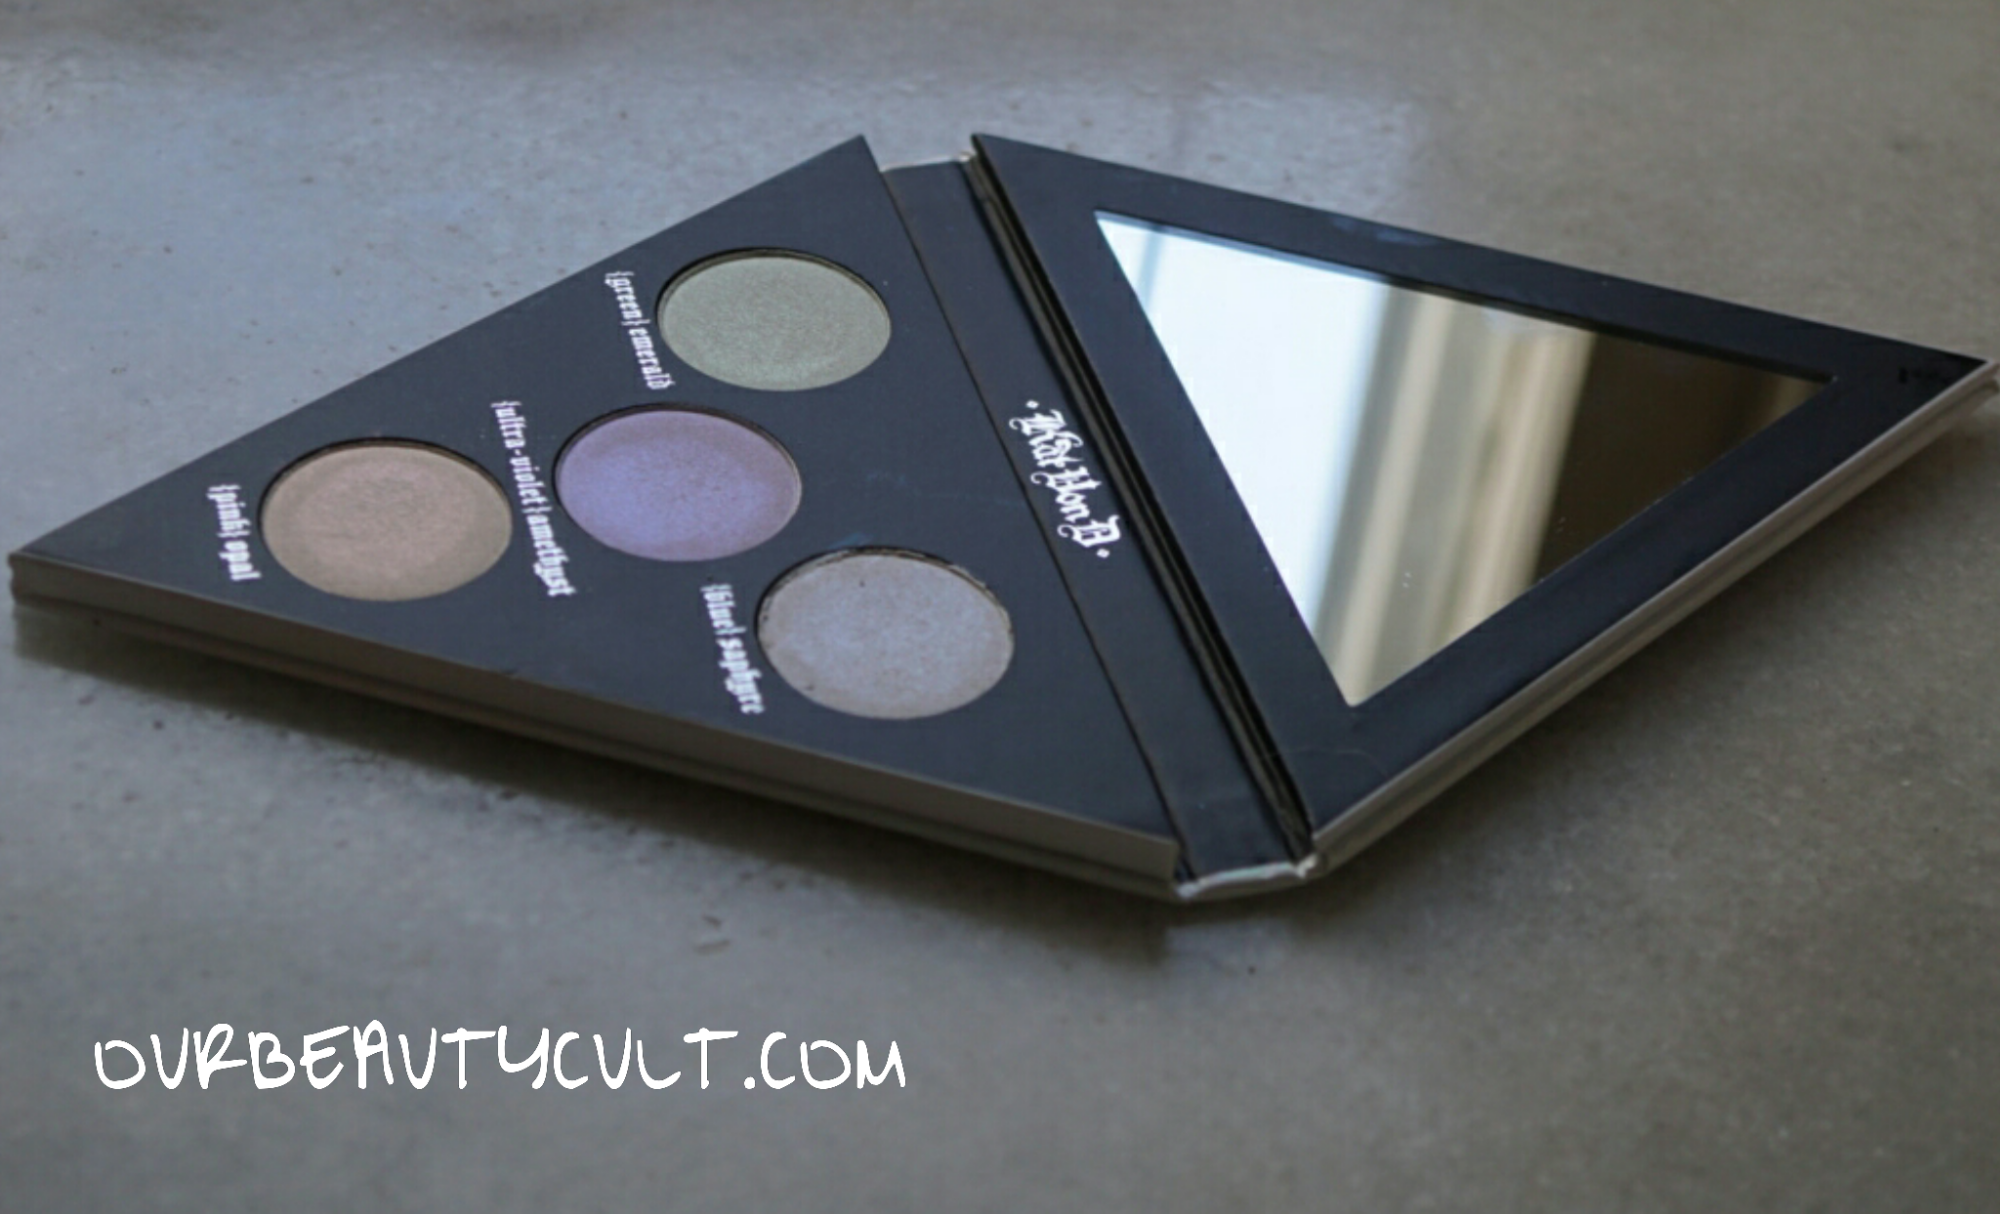 kat von d alchemist holographic palette review and swatches  this palette will be available for sephora vib on 18 and for everyone else on the 24th it will be available in stores on 5